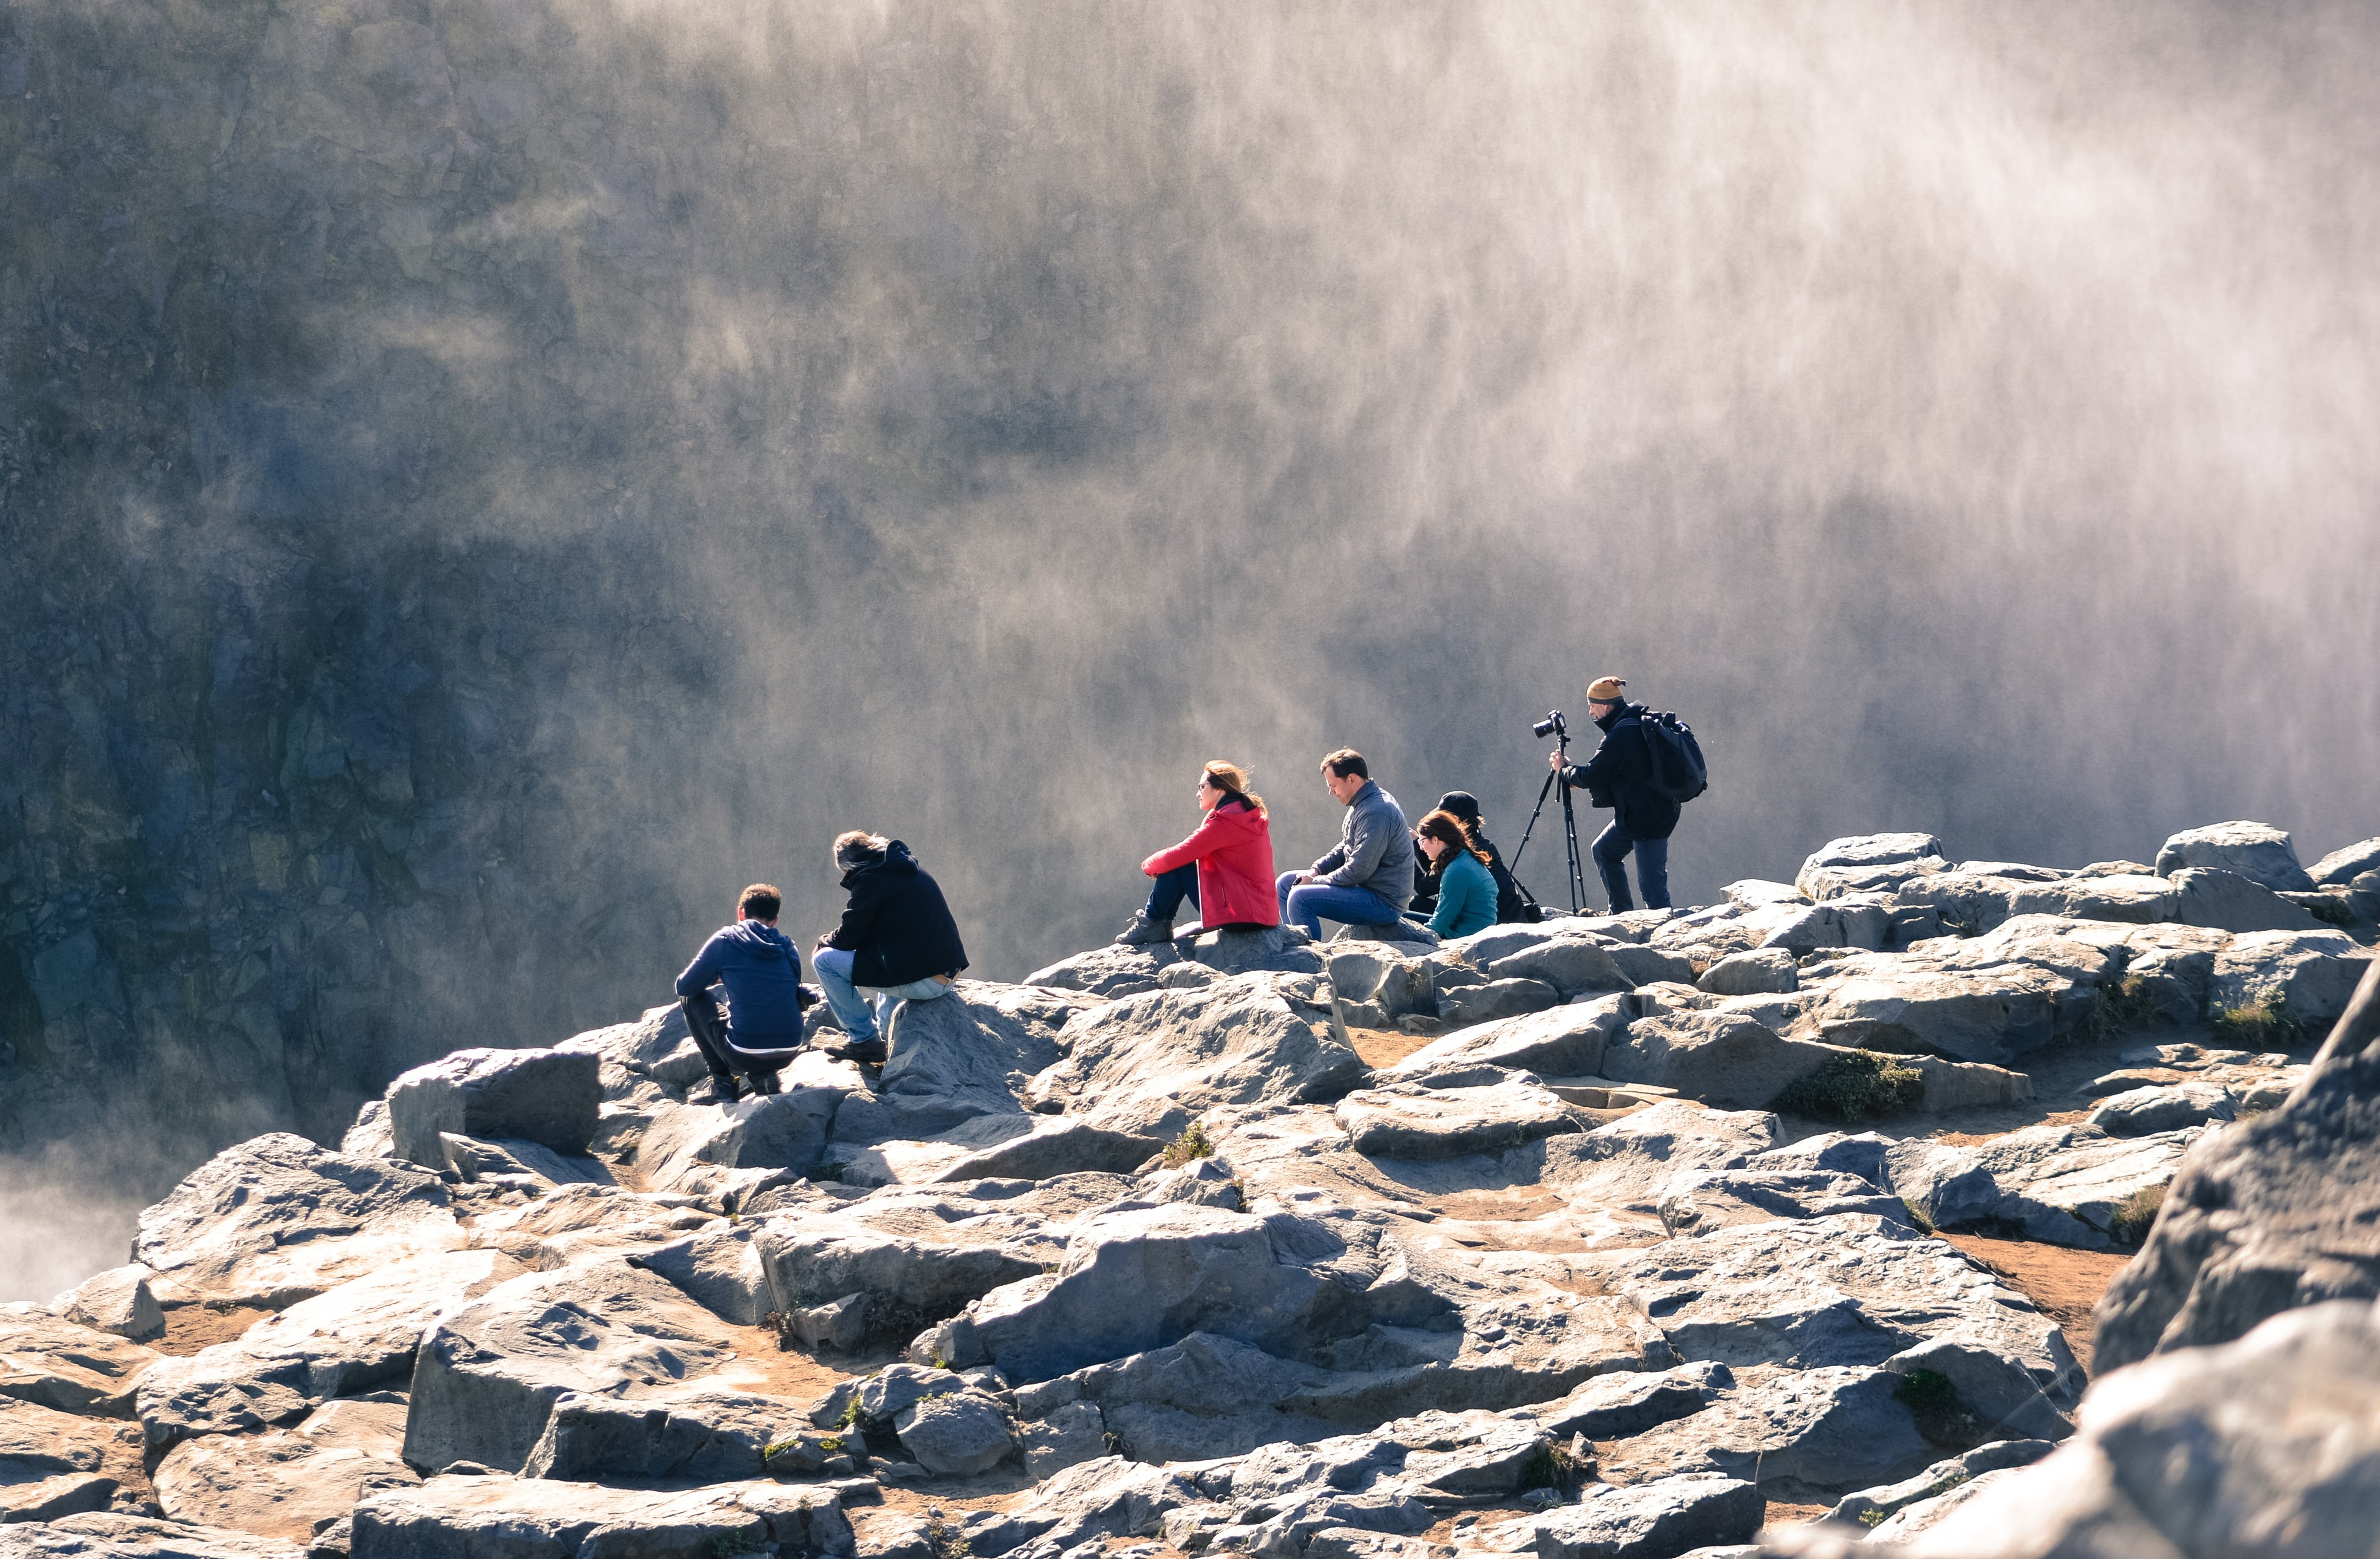 Group of adventurers resting on rocks, admiring and photographing the beauty of a mountain mist